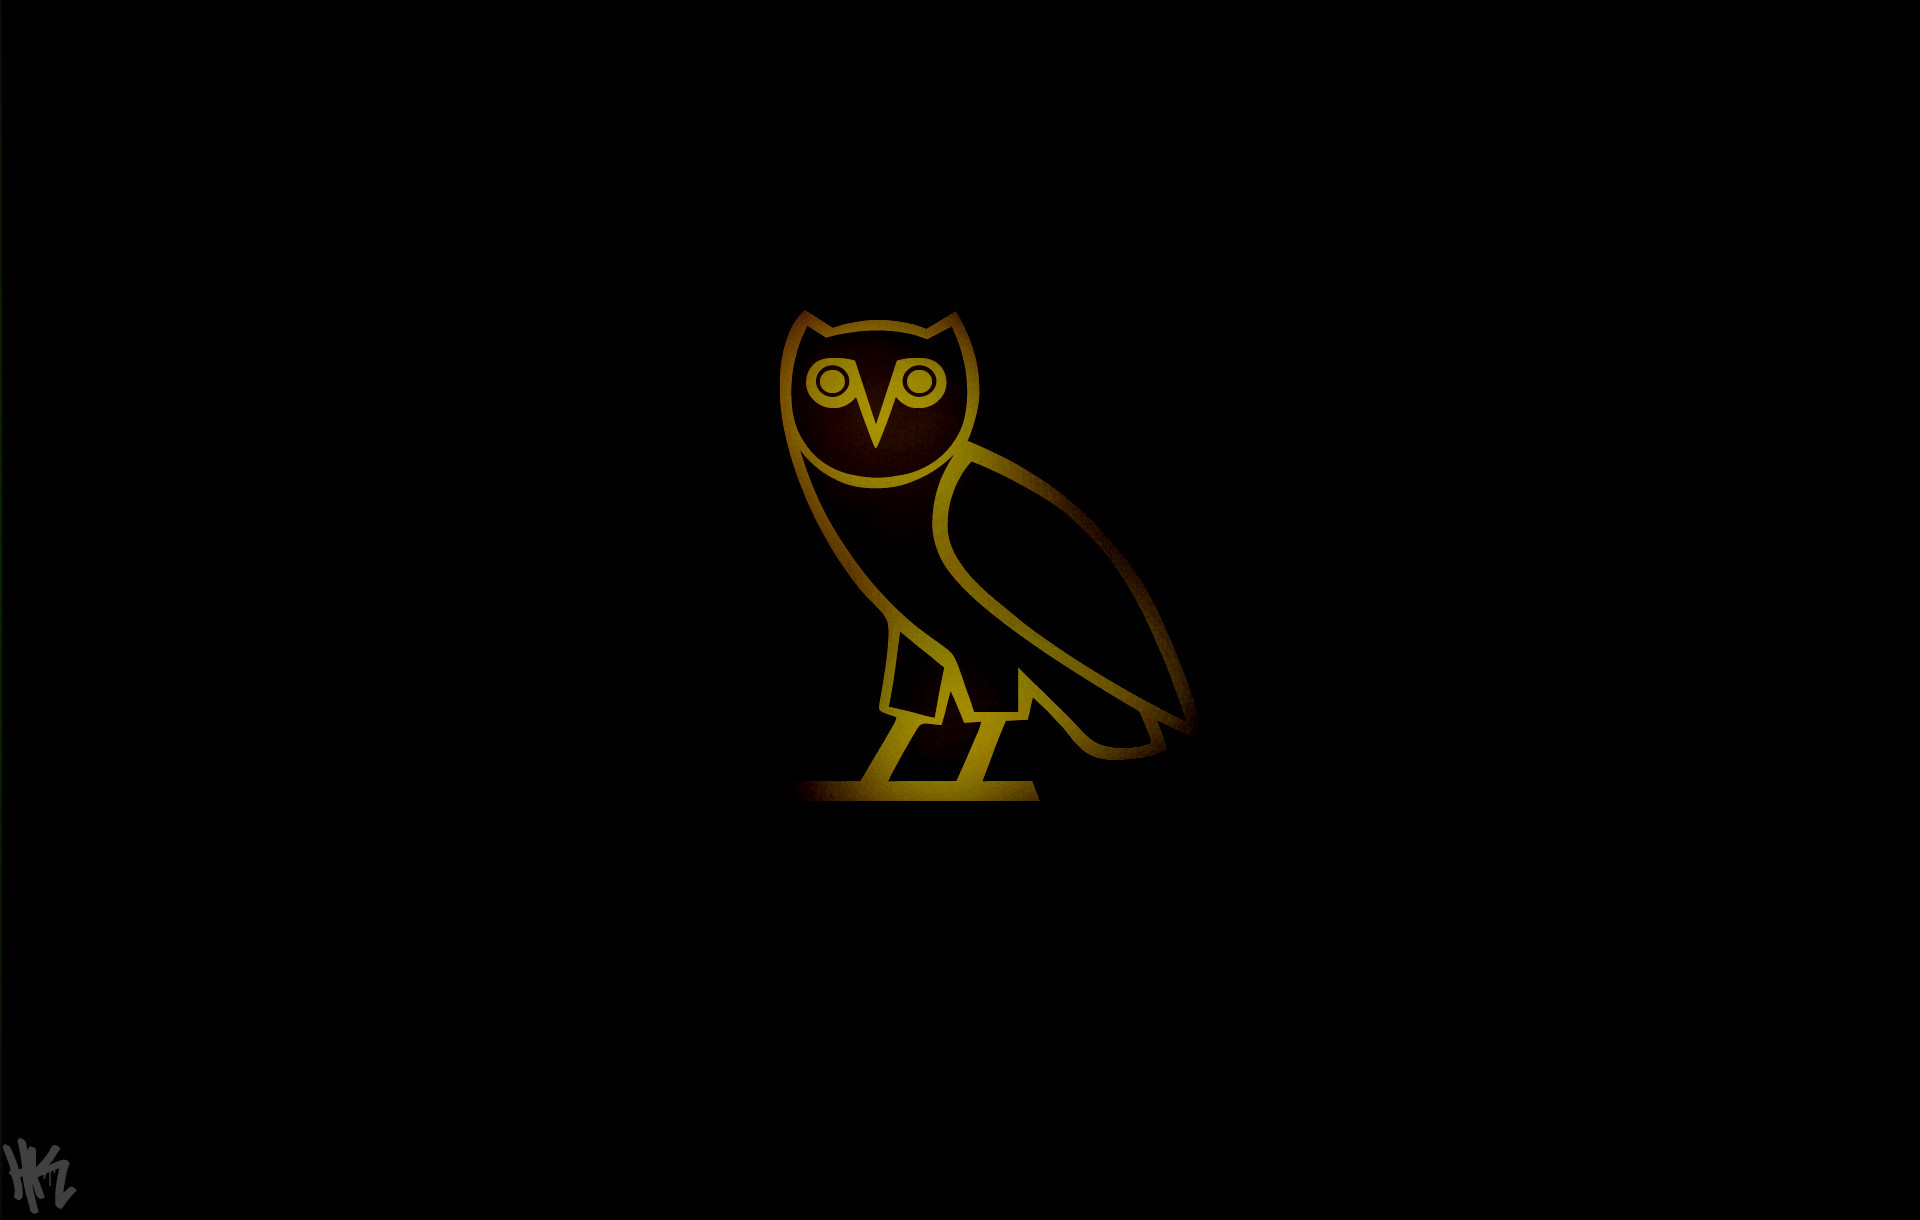 1920x1220 Owl Tumblr Wallpaper Android